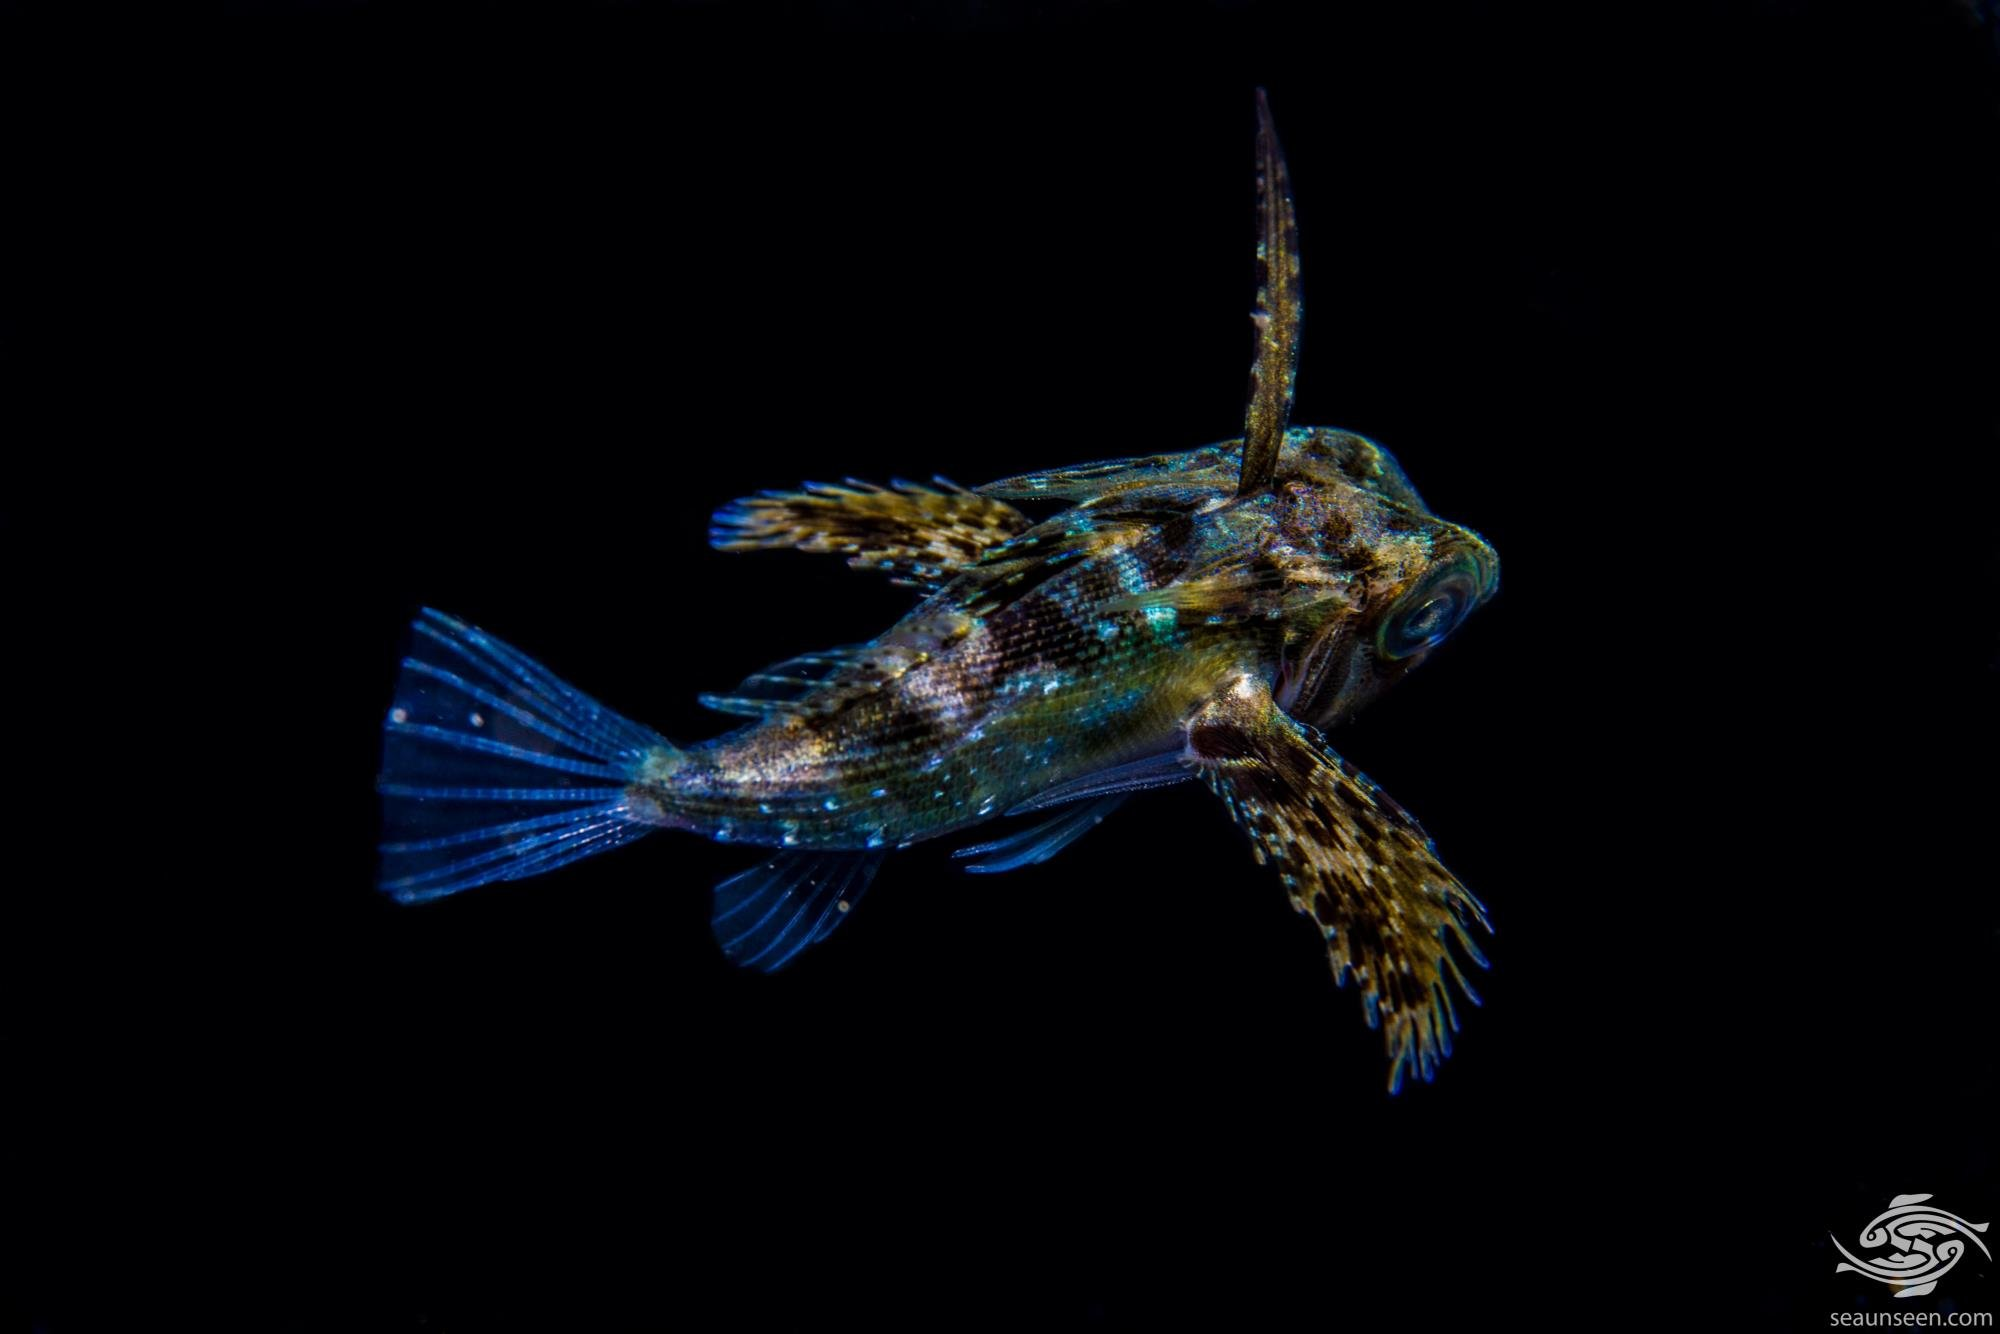 juvenile Oriental flying gurnard Dactyloptena orientalis is also known as the Purple Flying Gurnard or the Common Helmet Gurnard